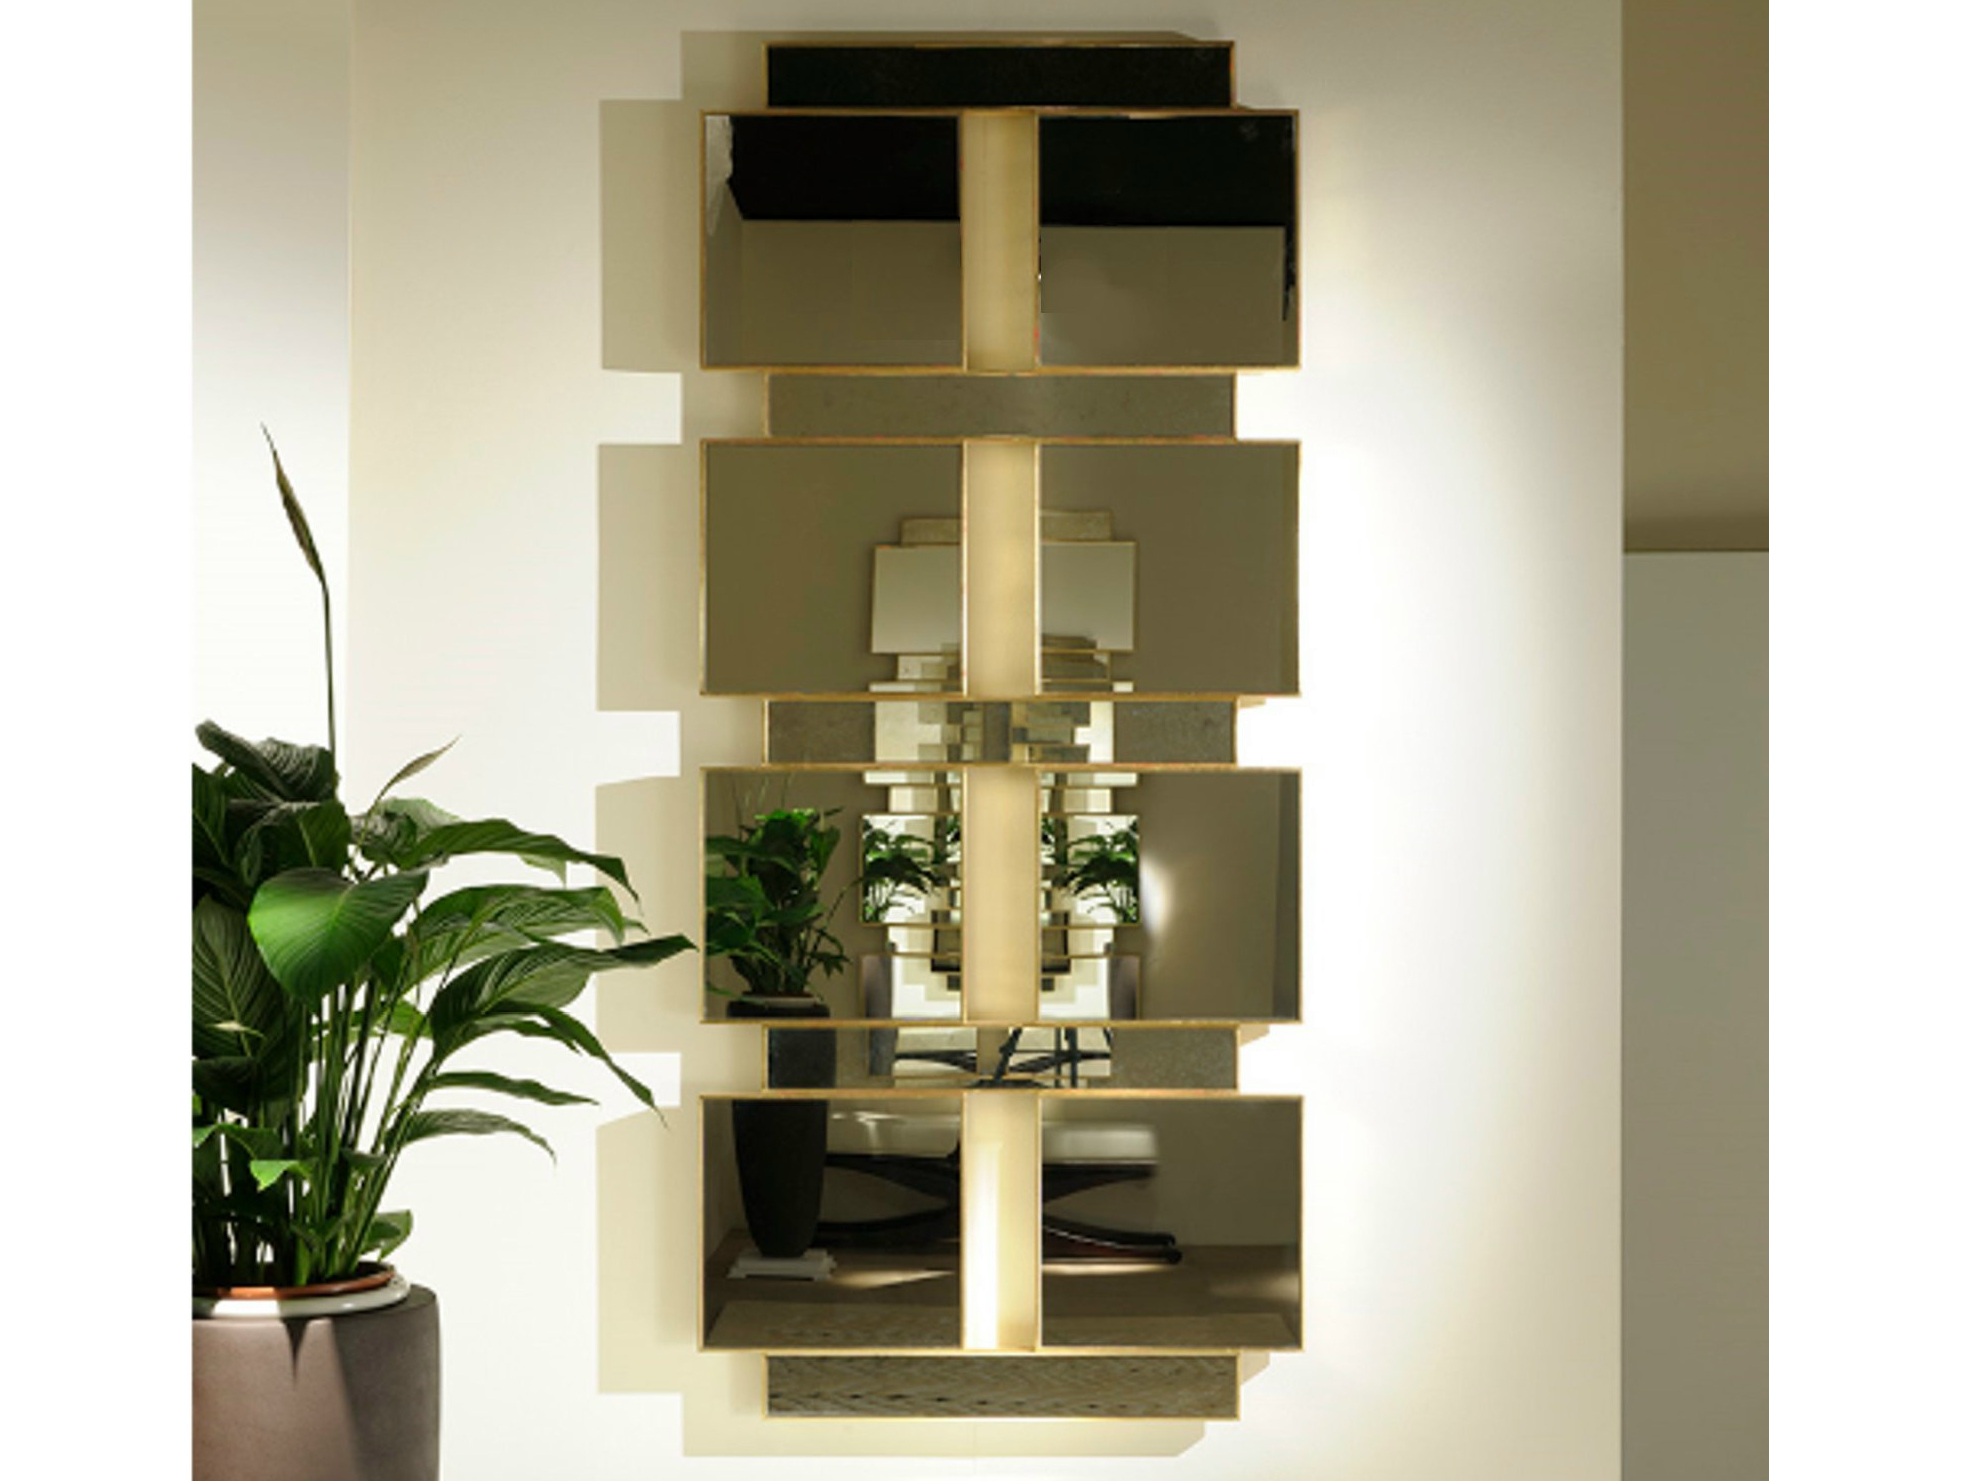 Art deco milano miroir mural by transition by casali for Deco miroir mural